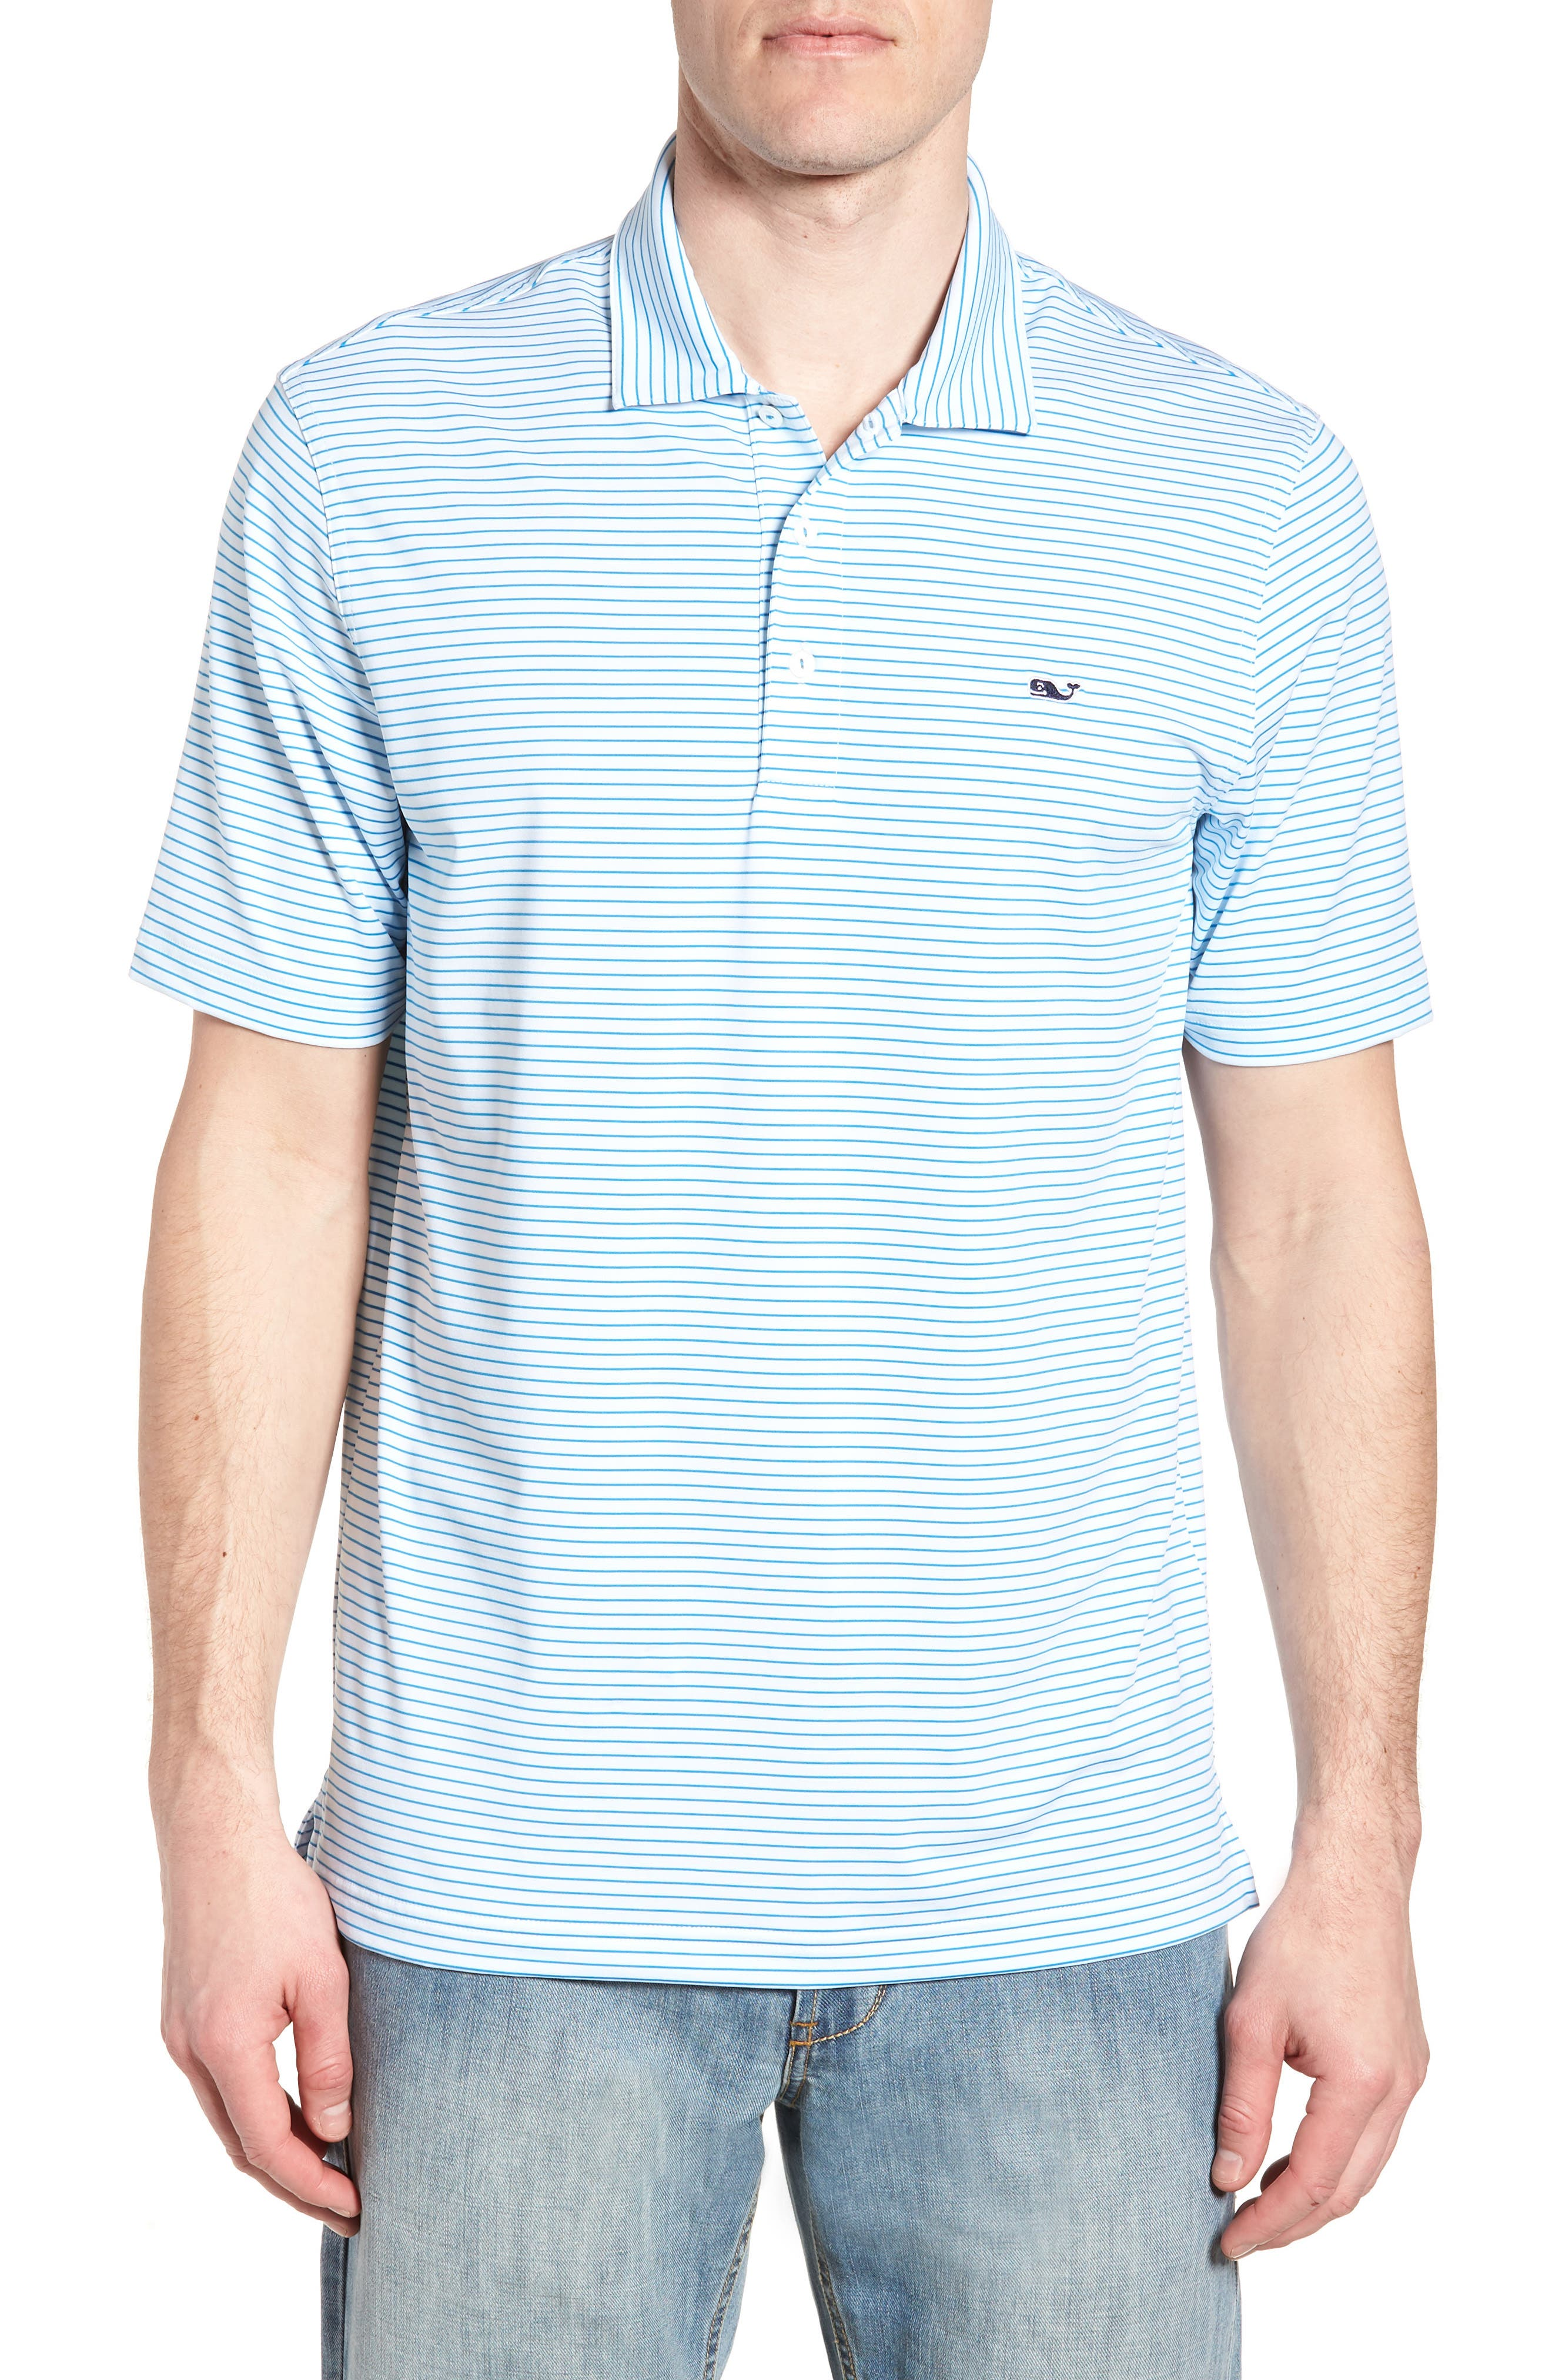 vineyard vines Heathered Wilson Stripe Polo